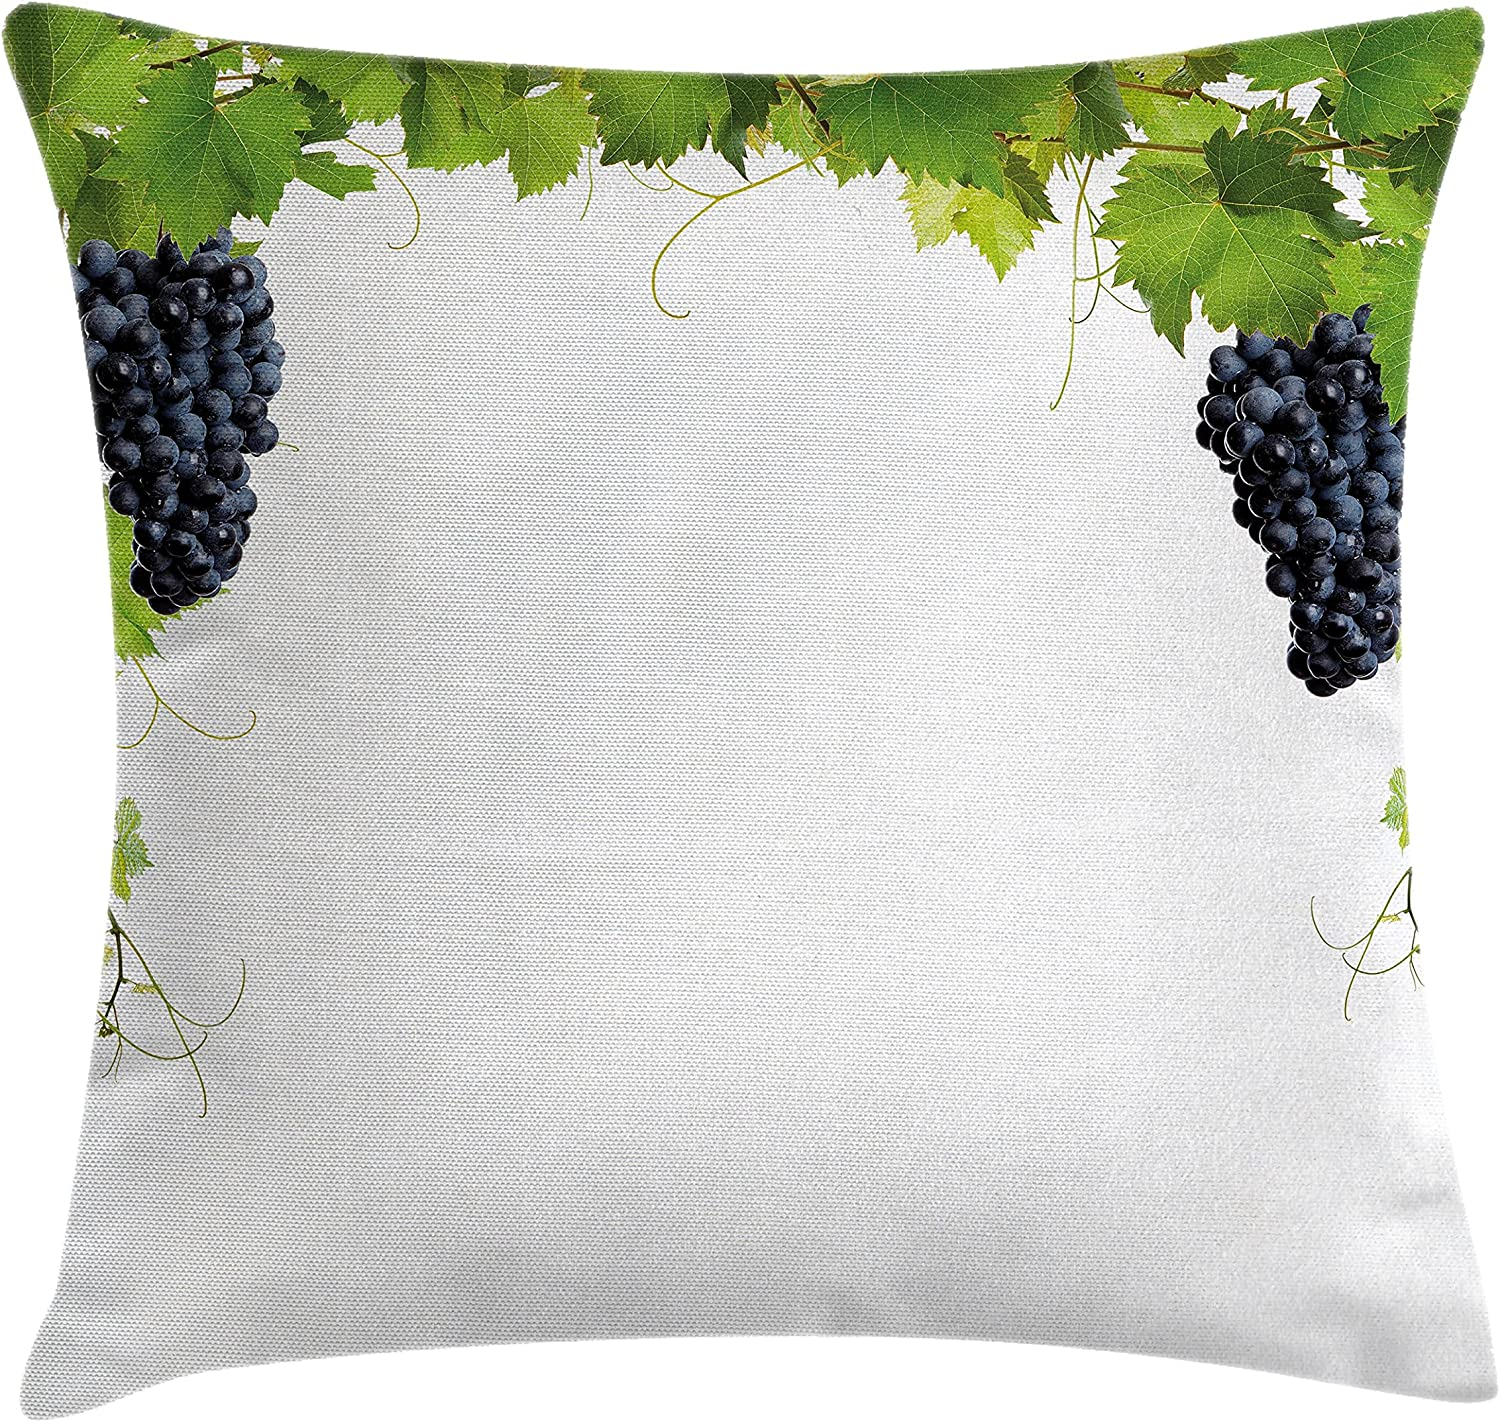 Ambesonne Vineyard Throw Pillow Cushion Cover Wine Leaf With Loose Bunch Of Large Berries Tannin Breed French Village Image Decorative Square Accent Pillow Case 16 X 16 Green Black Home